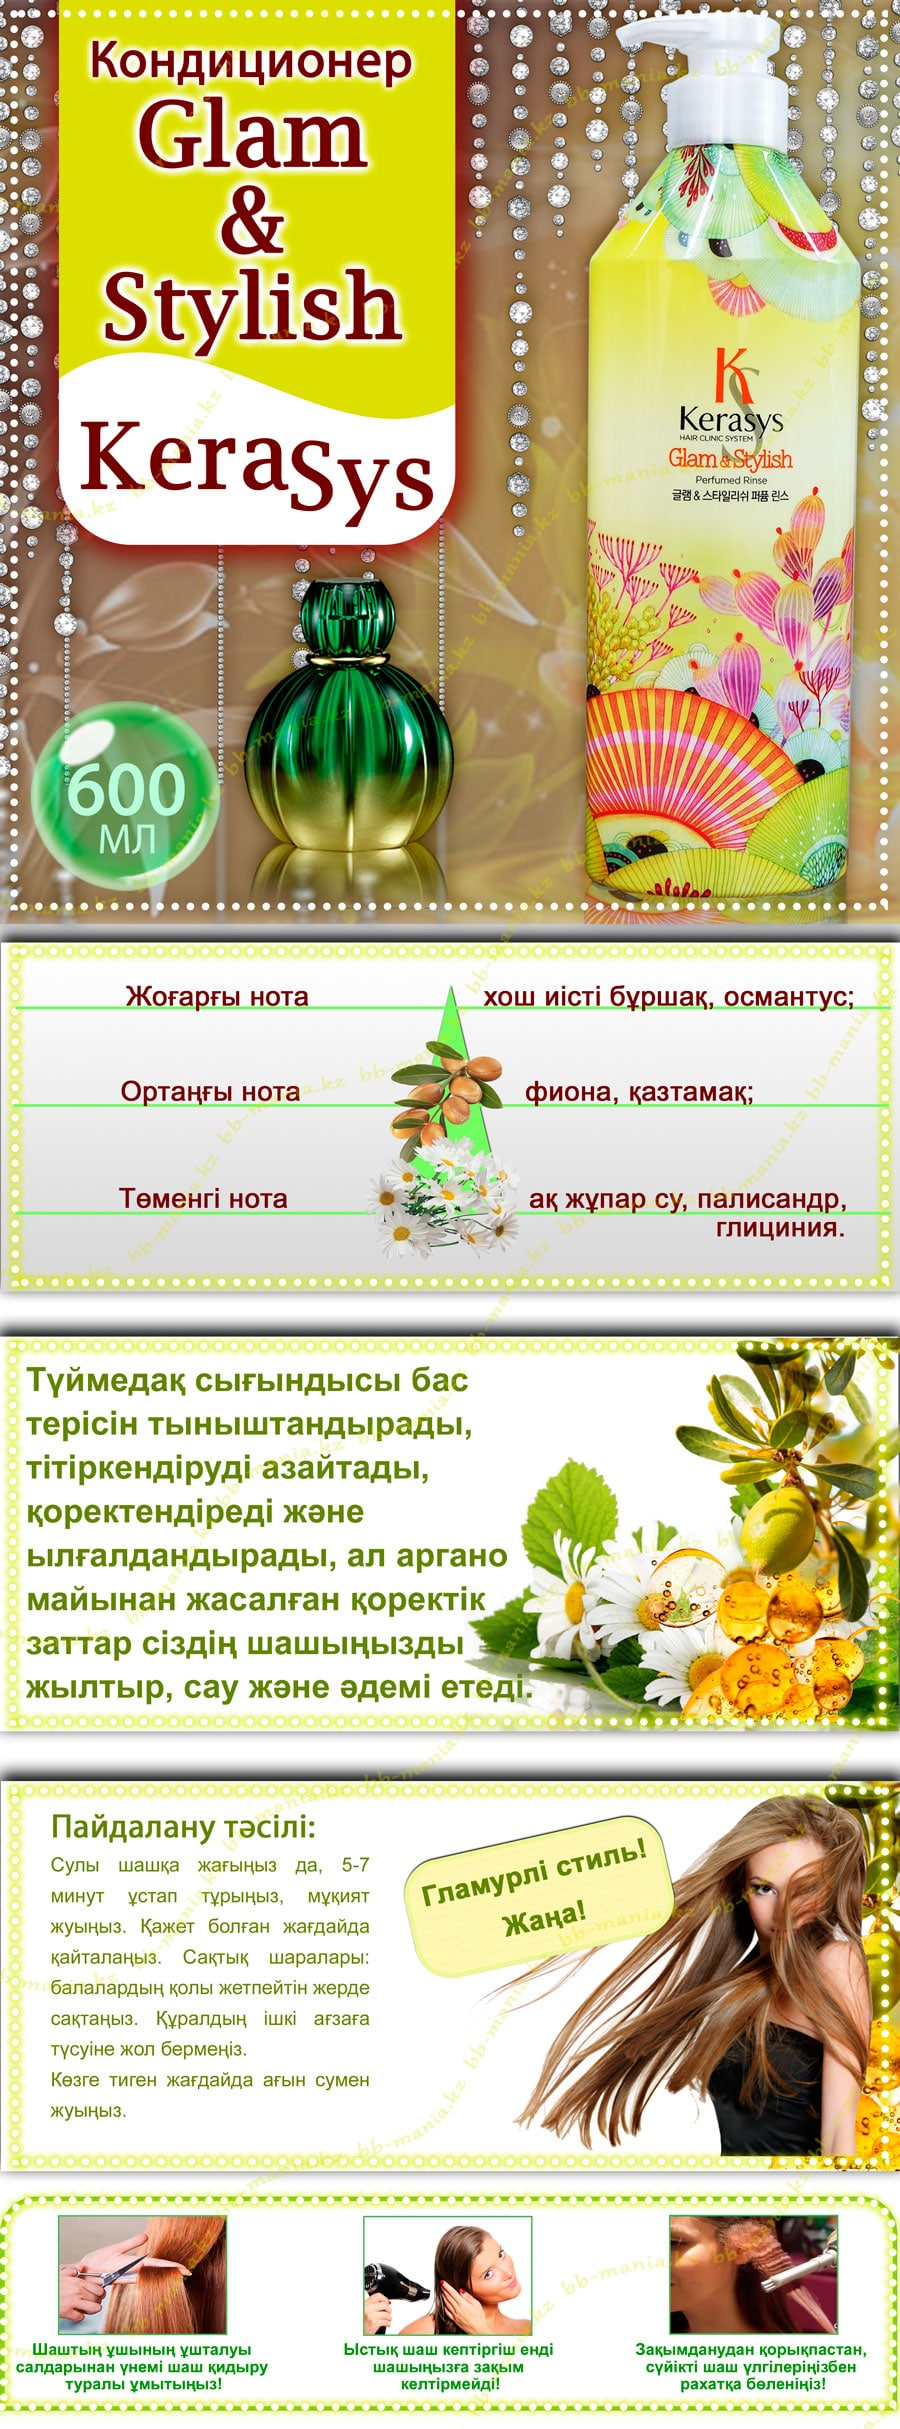 Kerasys-Glam-&-Stylish-Perfumed-Conditioner кз-min